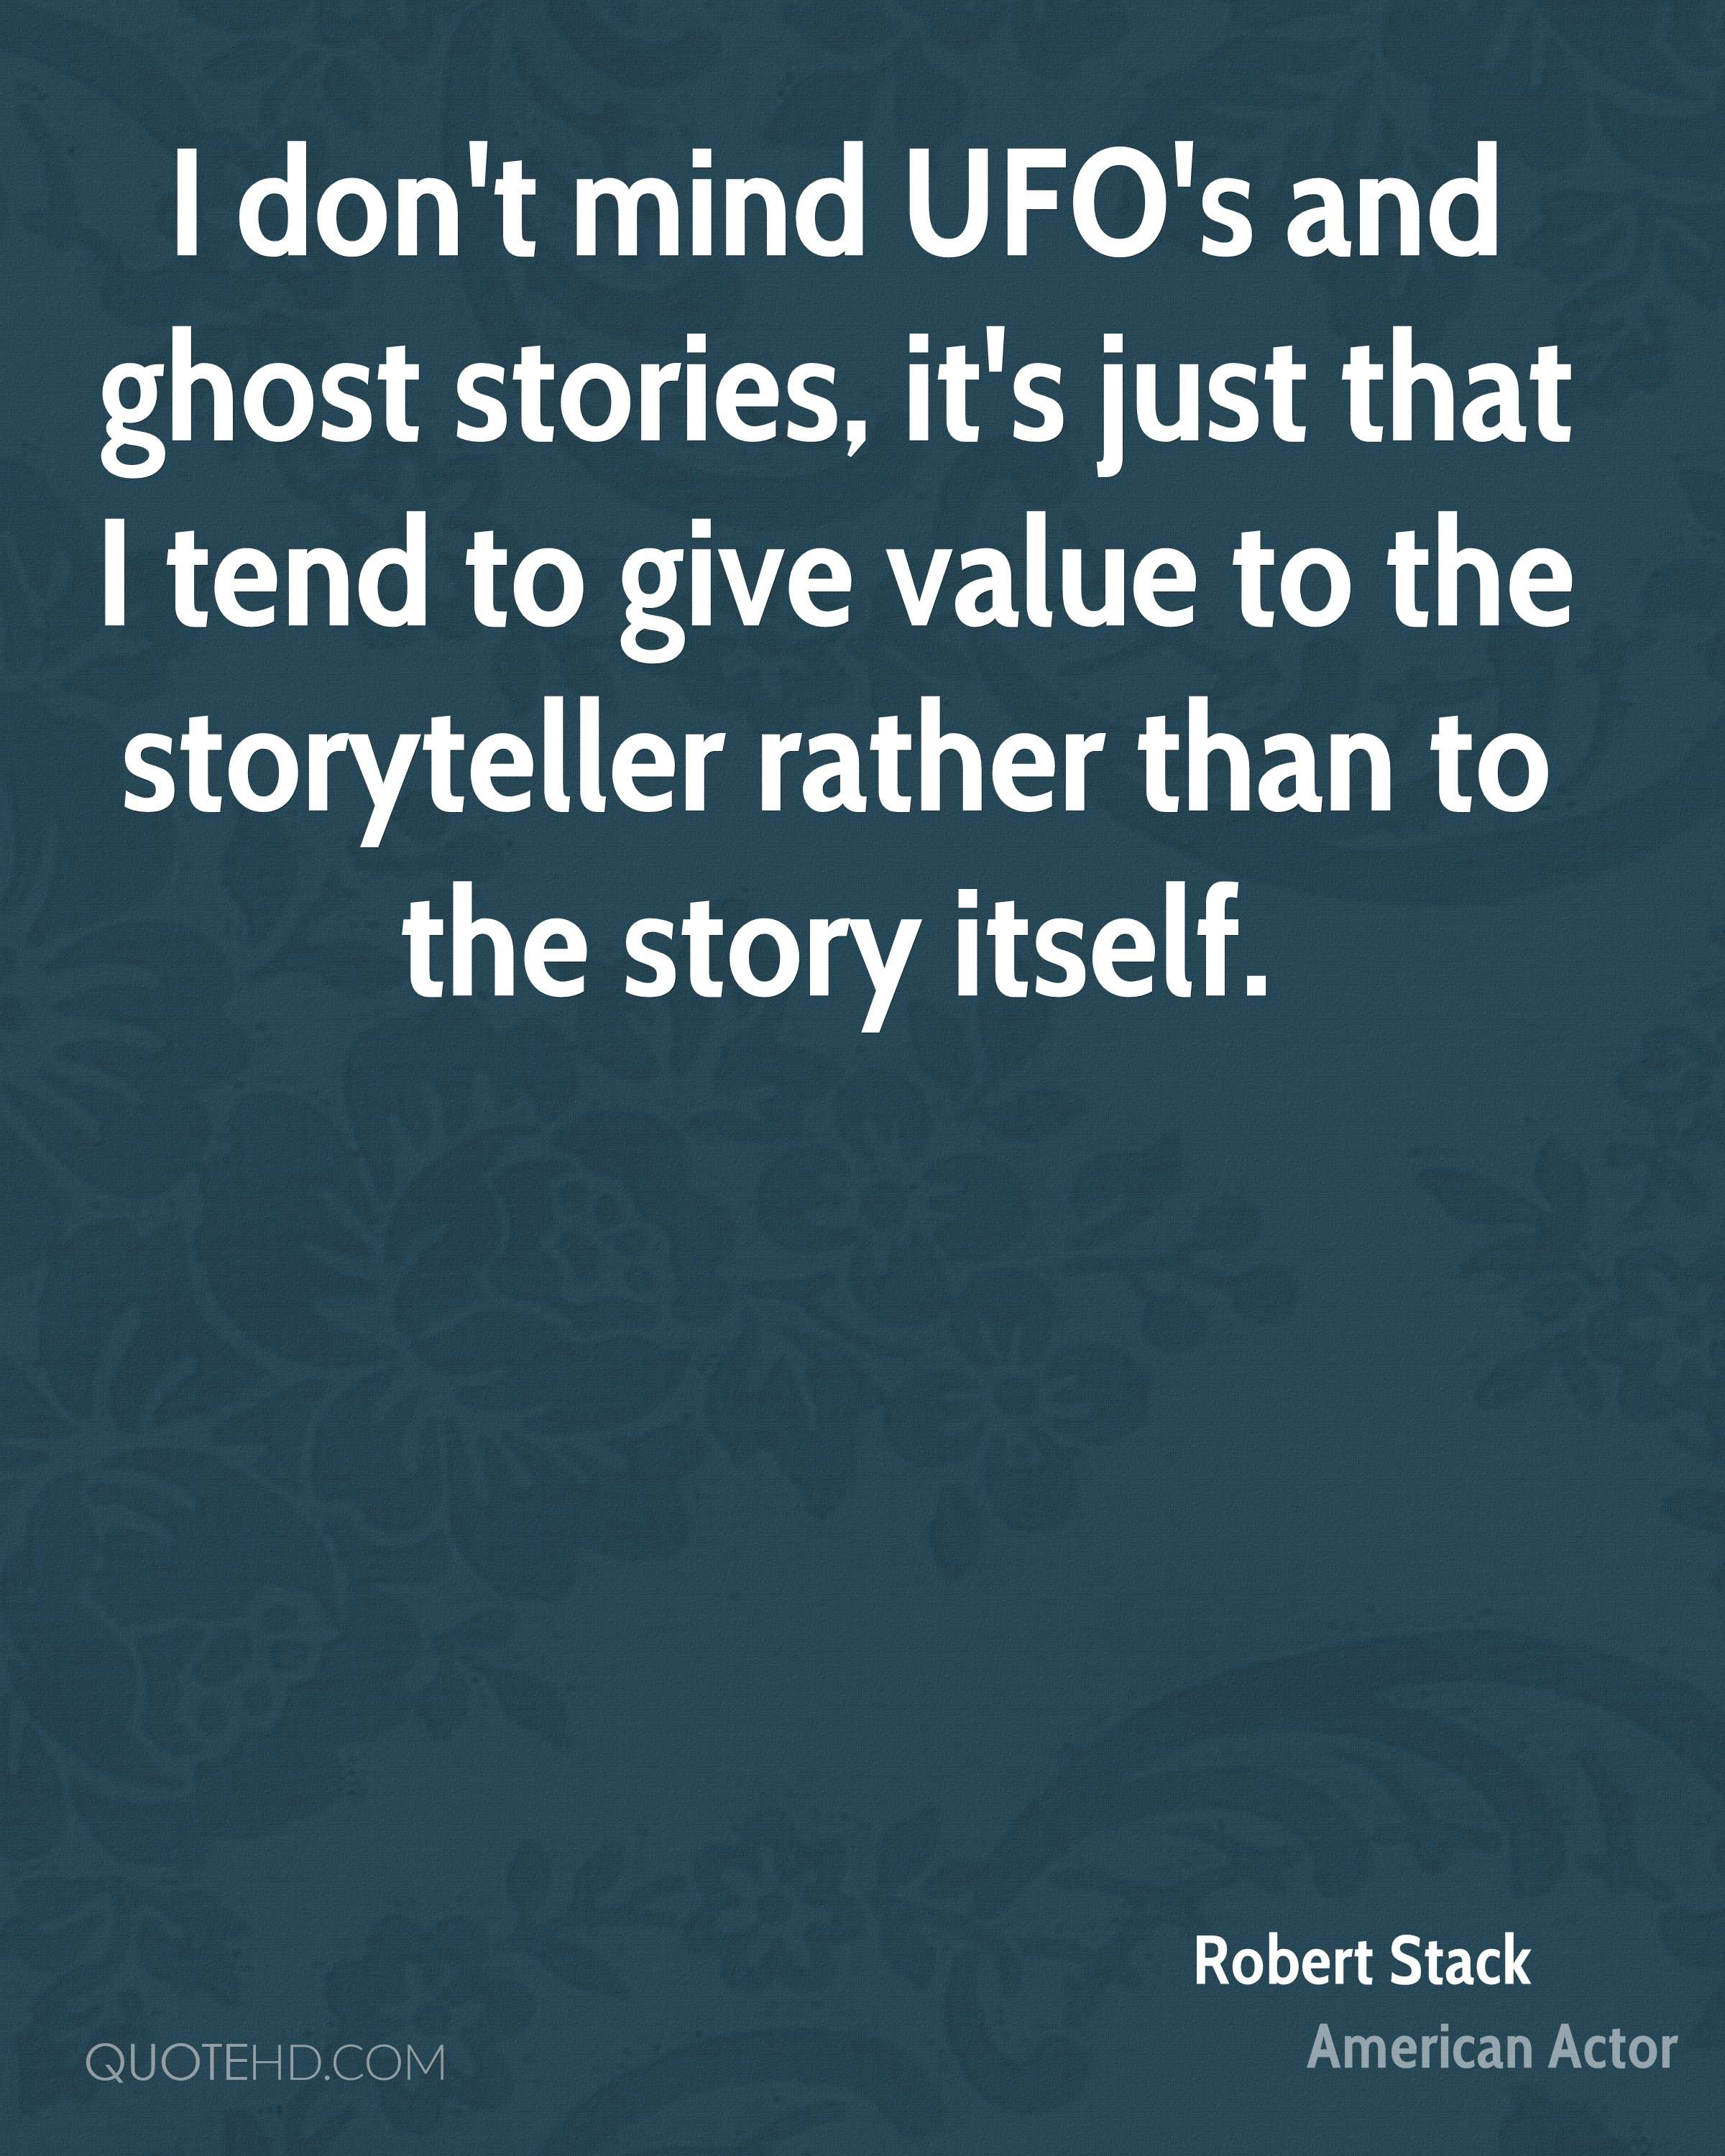 I don't mind UFO's and ghost stories, it's just that I tend to give value to the storyteller rather than to the story itself.